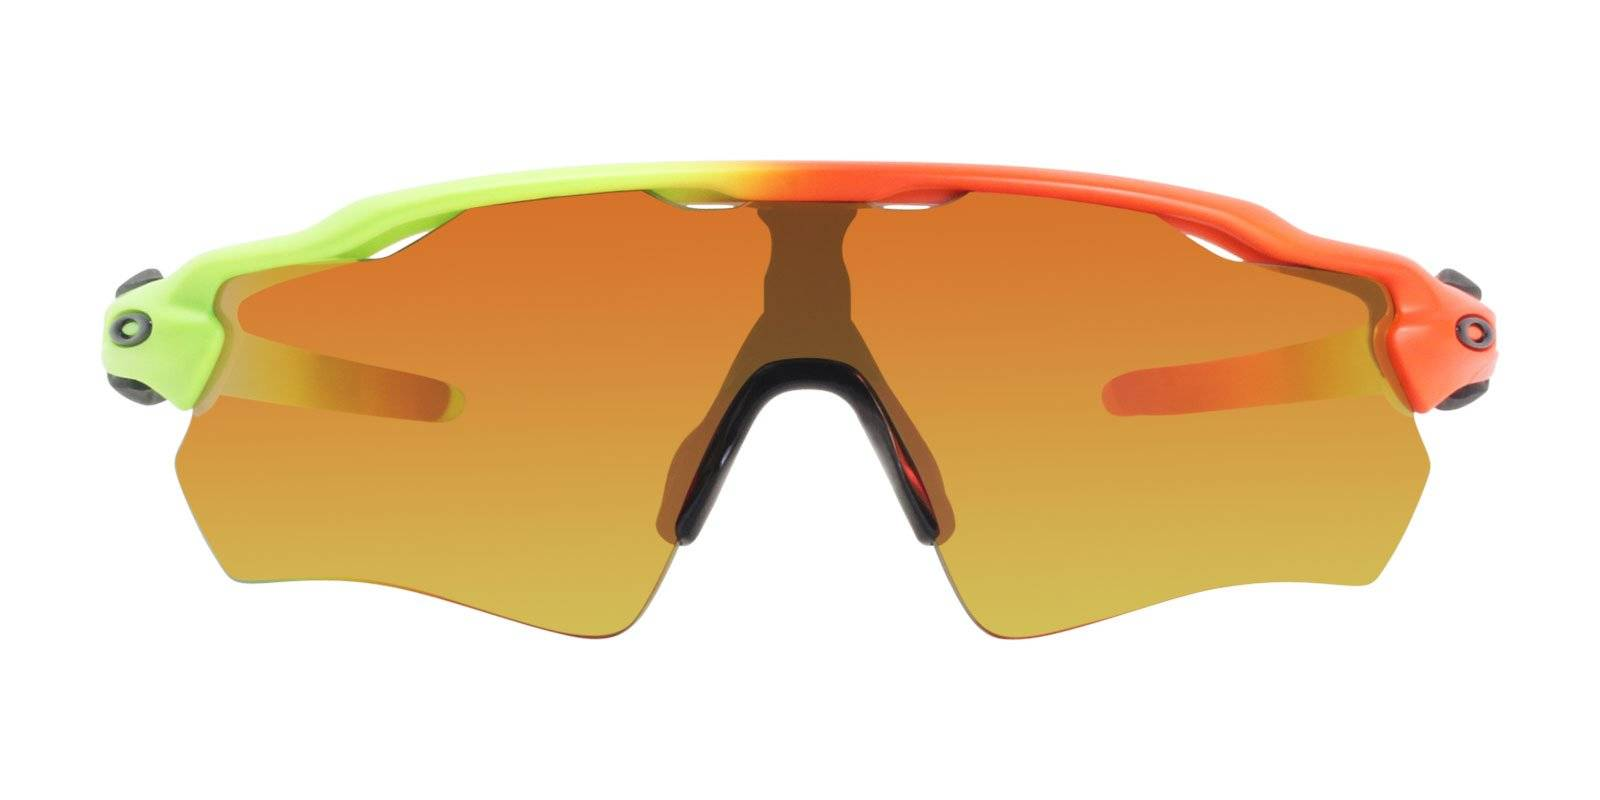 Oakley Sunglasses   Buy and Shop for Oakley Sunglasses at ... 0a96d746d712